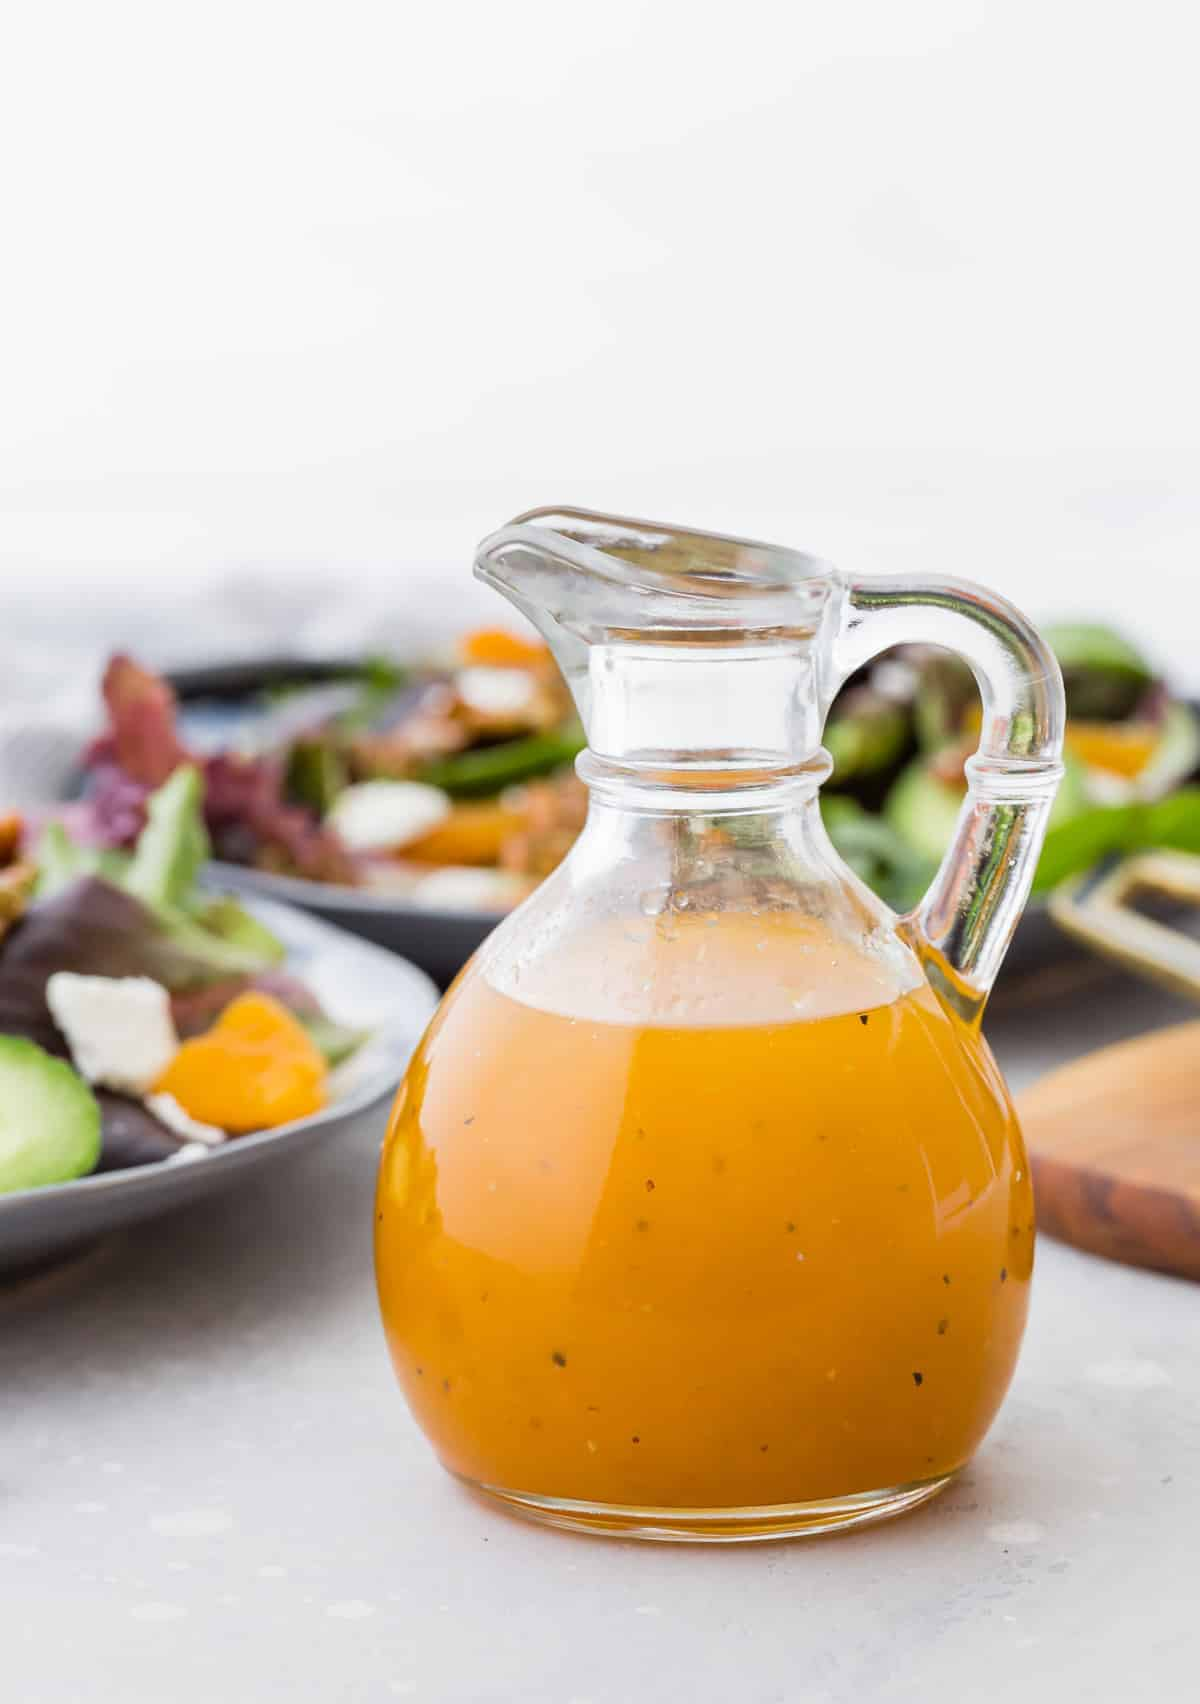 Apricot vinaigrette in a small glass pitcher.